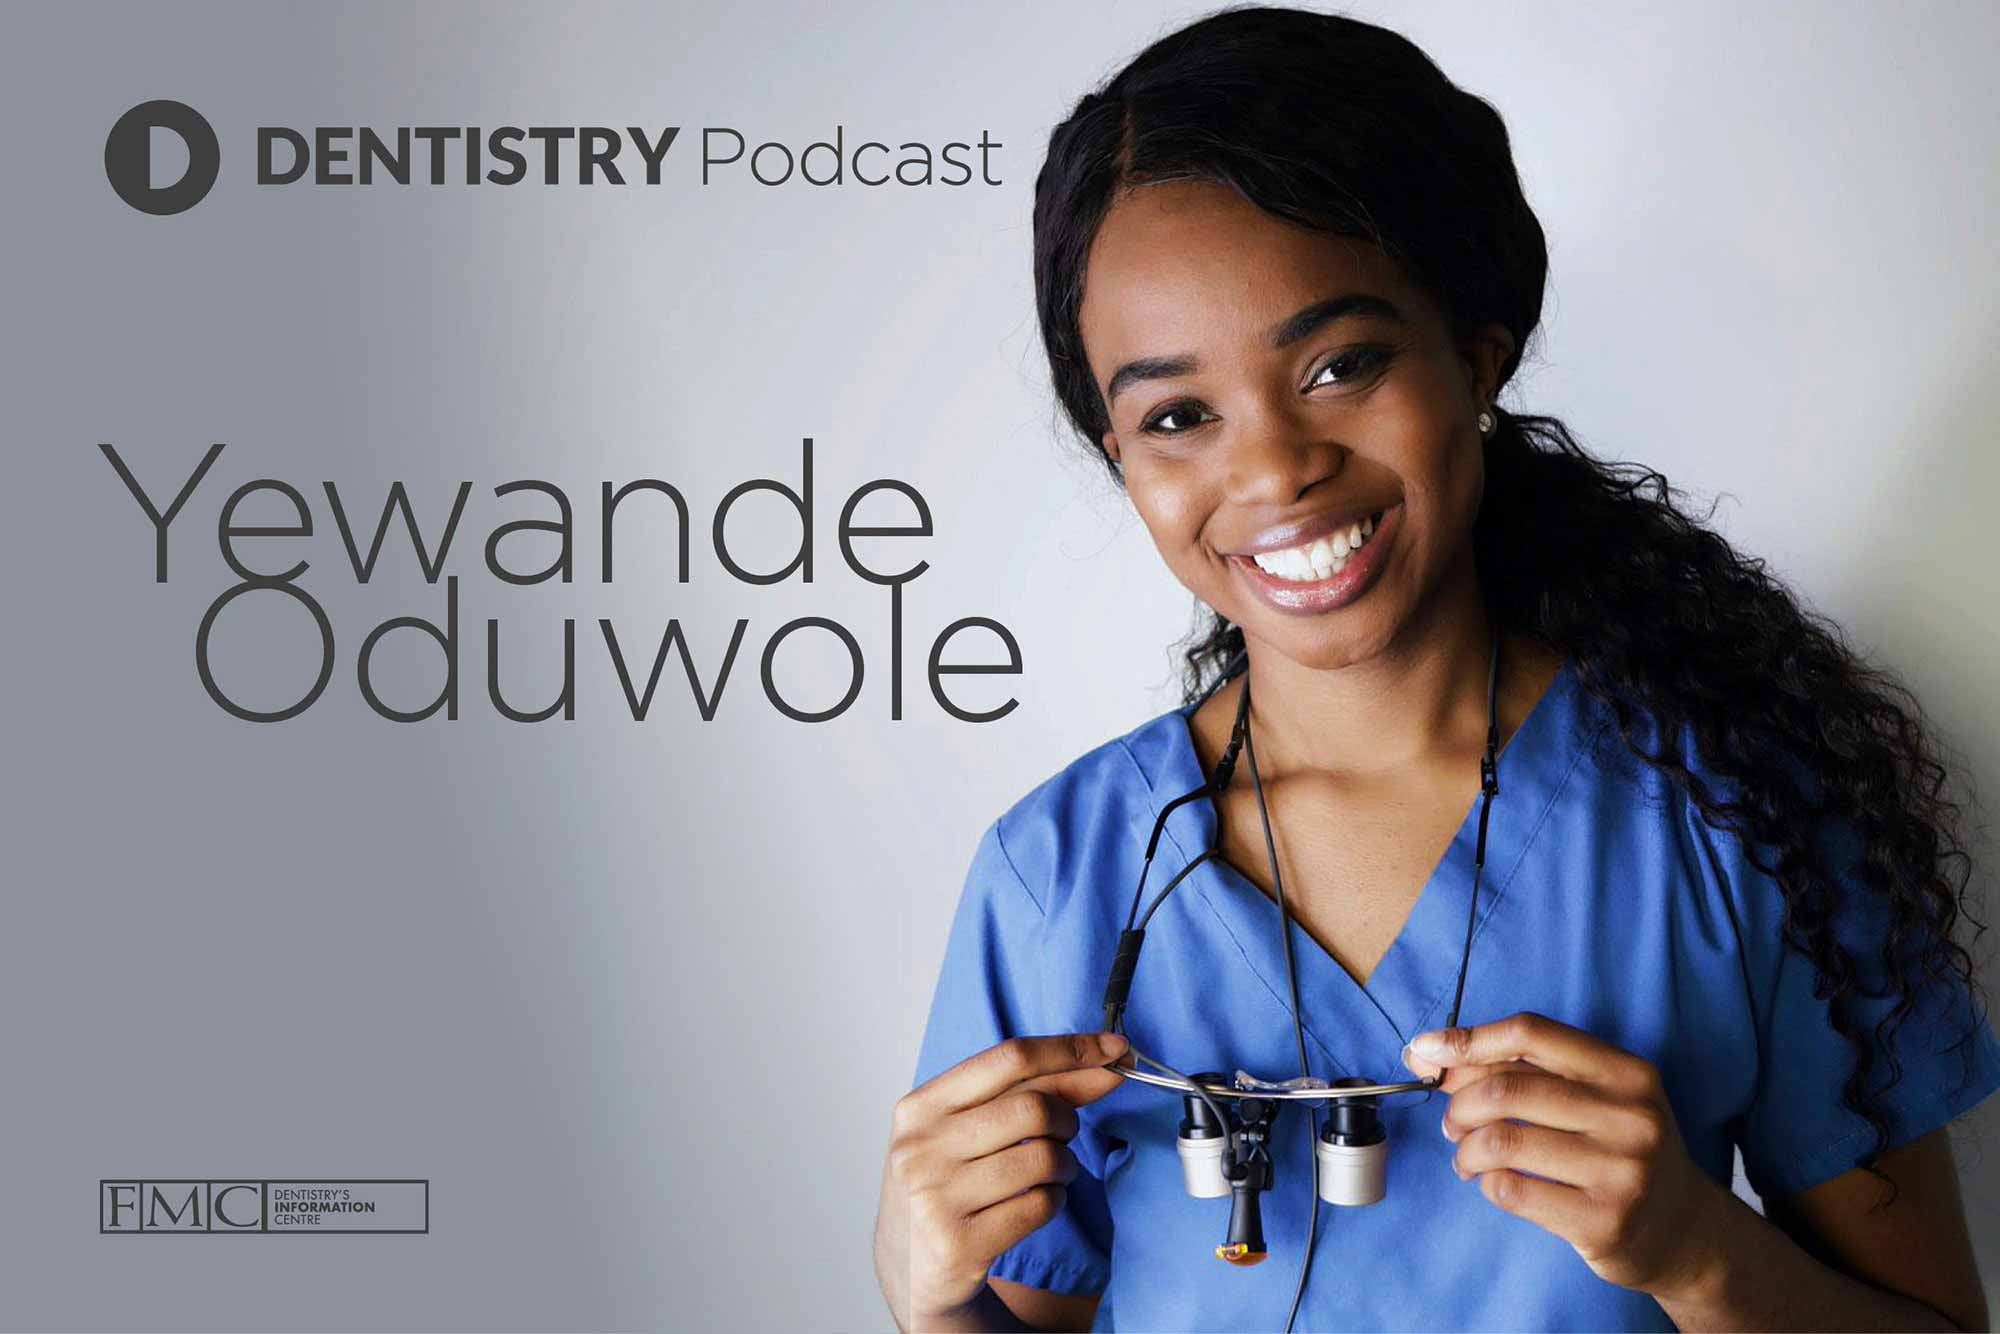 In this week's podcast episode, Dentistry Online talks to dental graduate Yewande Oduwole about her journey into dentistry